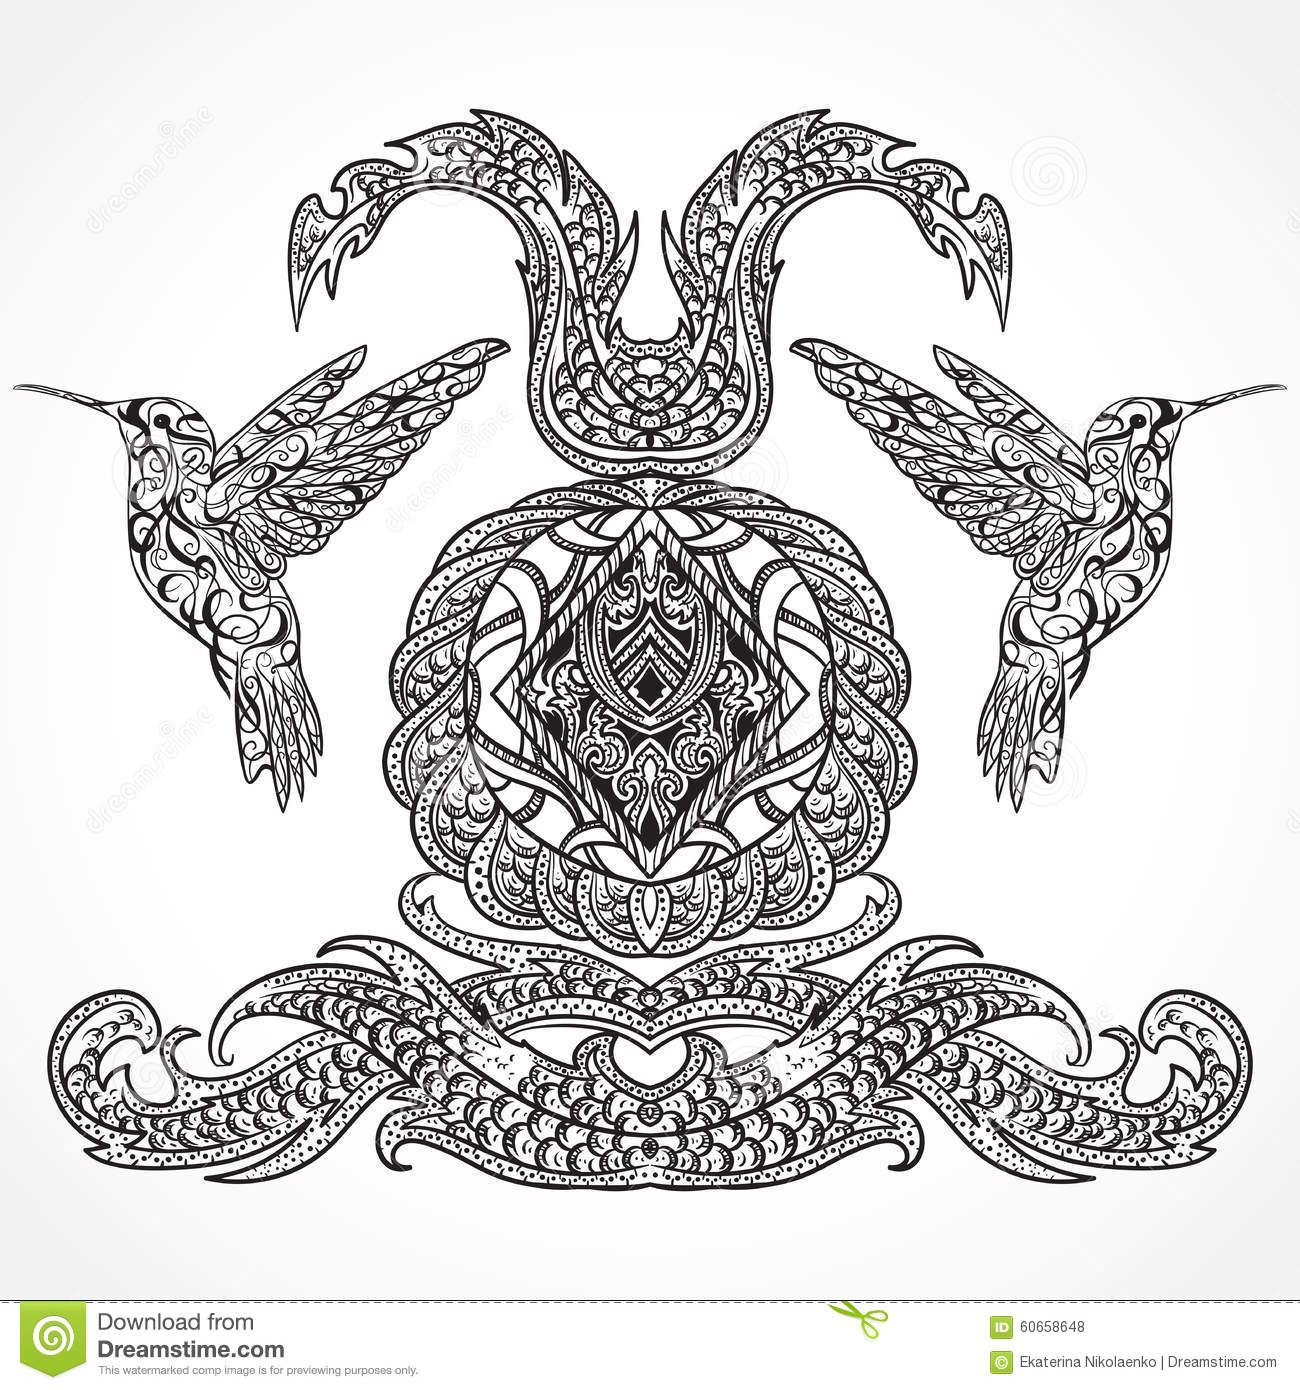 Victorian Design Elements victorian design elements stock images - image: 28354534